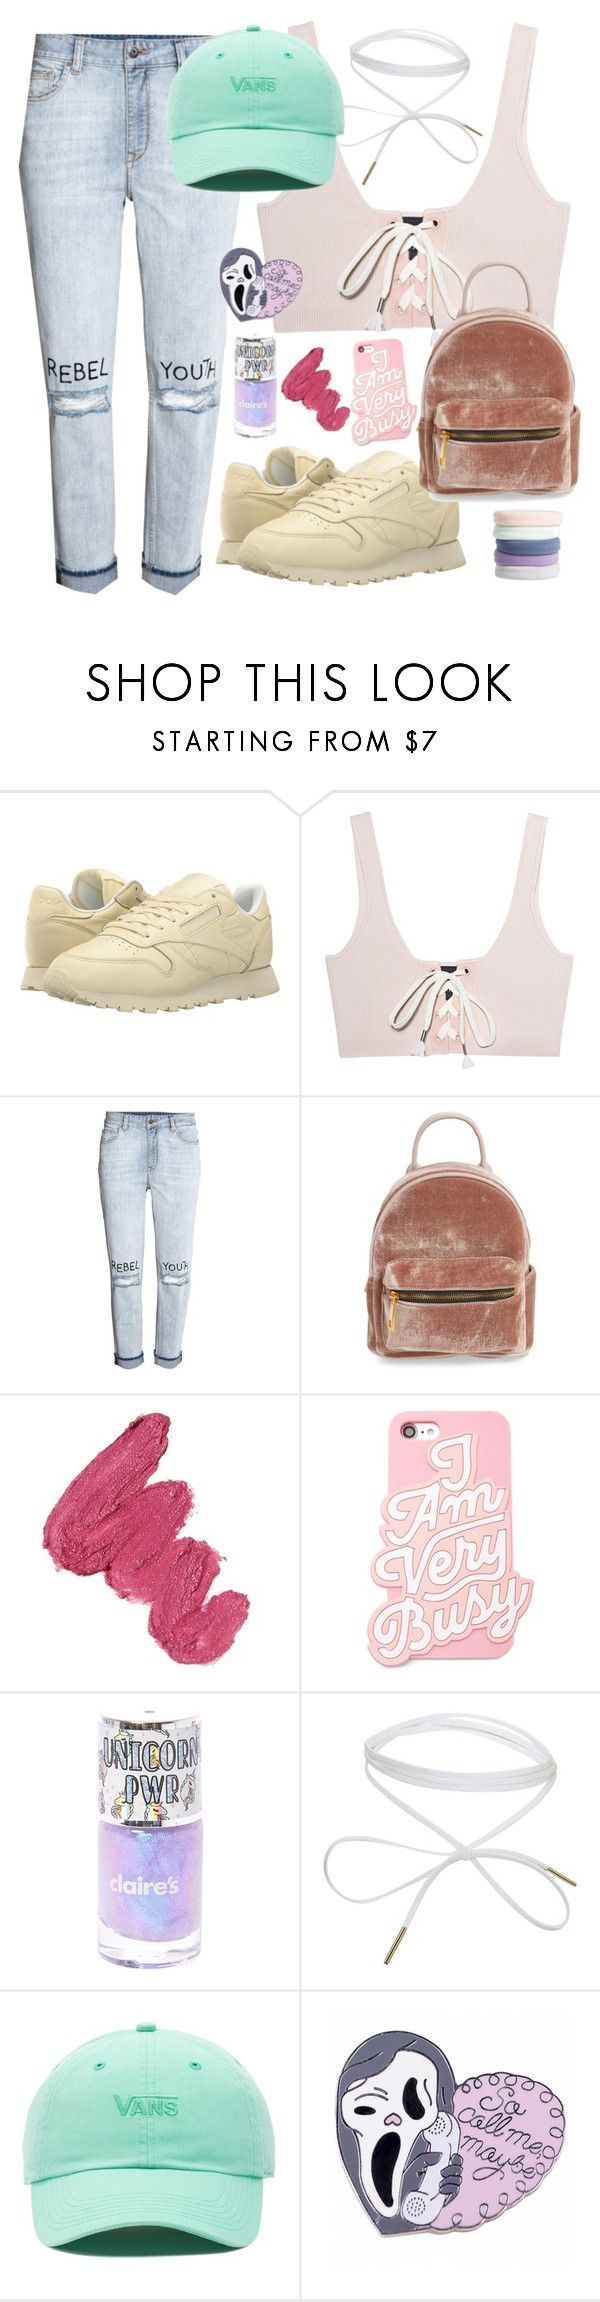 """""""Pastel Outfit"""" by scheylly ❤ liked on Polyvore featuring Reebok Lifestyle, Puma, Street Level, Mermaid Salon, ban.do, Vans and L. Erickson"""